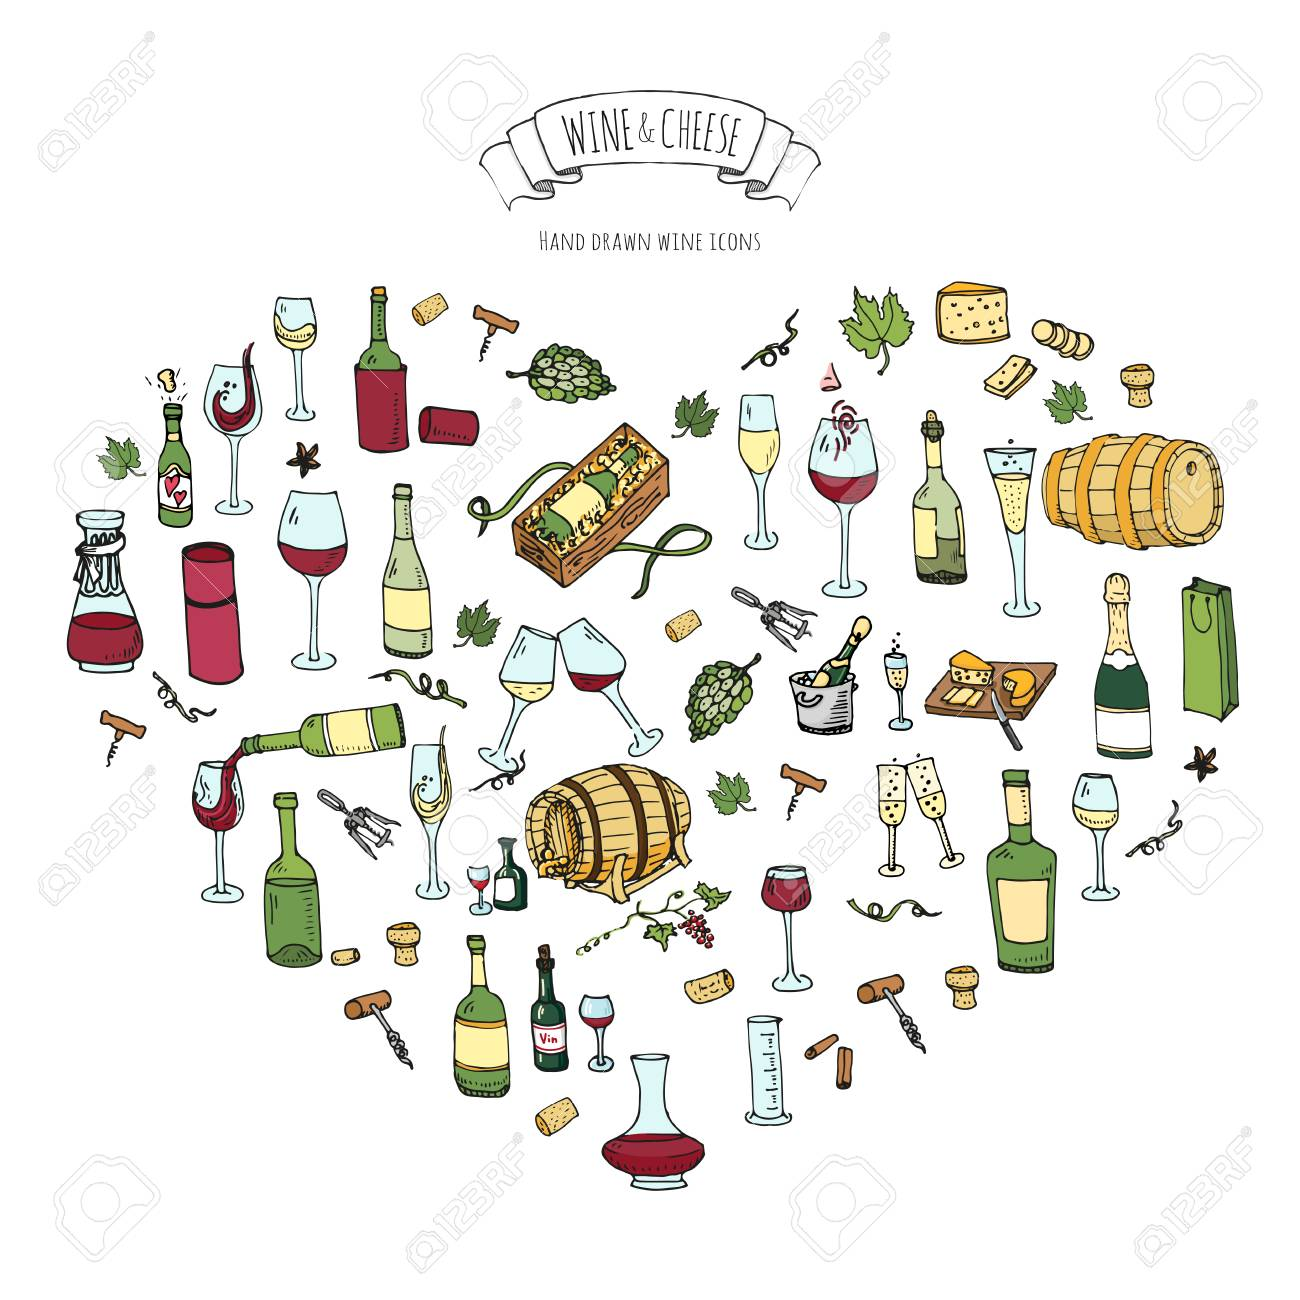 Hand drawn wine set icons Vector illustration Sketchy wine tasting elements collection Wine objects Cartoon wine symbols Vineyard background Vector wine background Winery illustration Grape Wine glass - 100314596